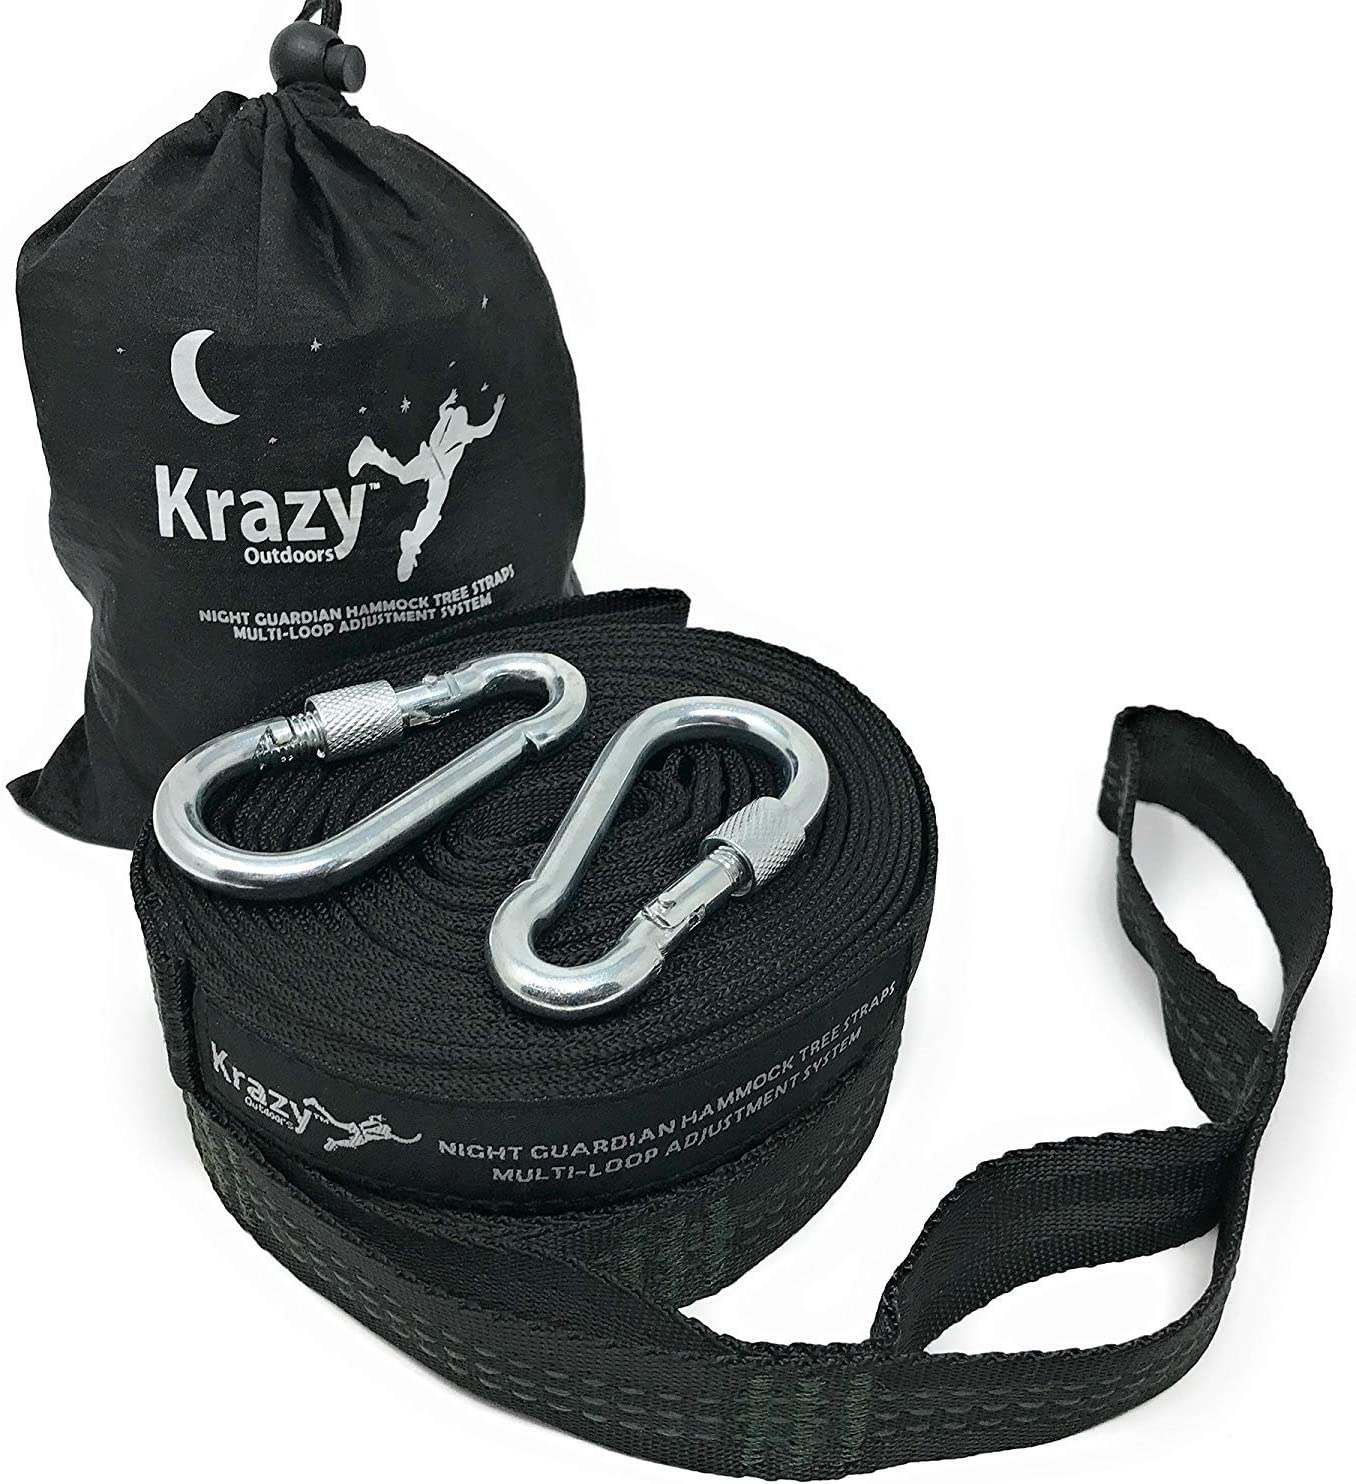 Krazy Outdoors Night Guardian Hammock Tree Straps – Black with Dark Green Stitching – Heavy Duty – 21 Multi-Loop Adjustment System – 100 Polyester Webbing Quality Straps – 1500 lbs Weight Capacity